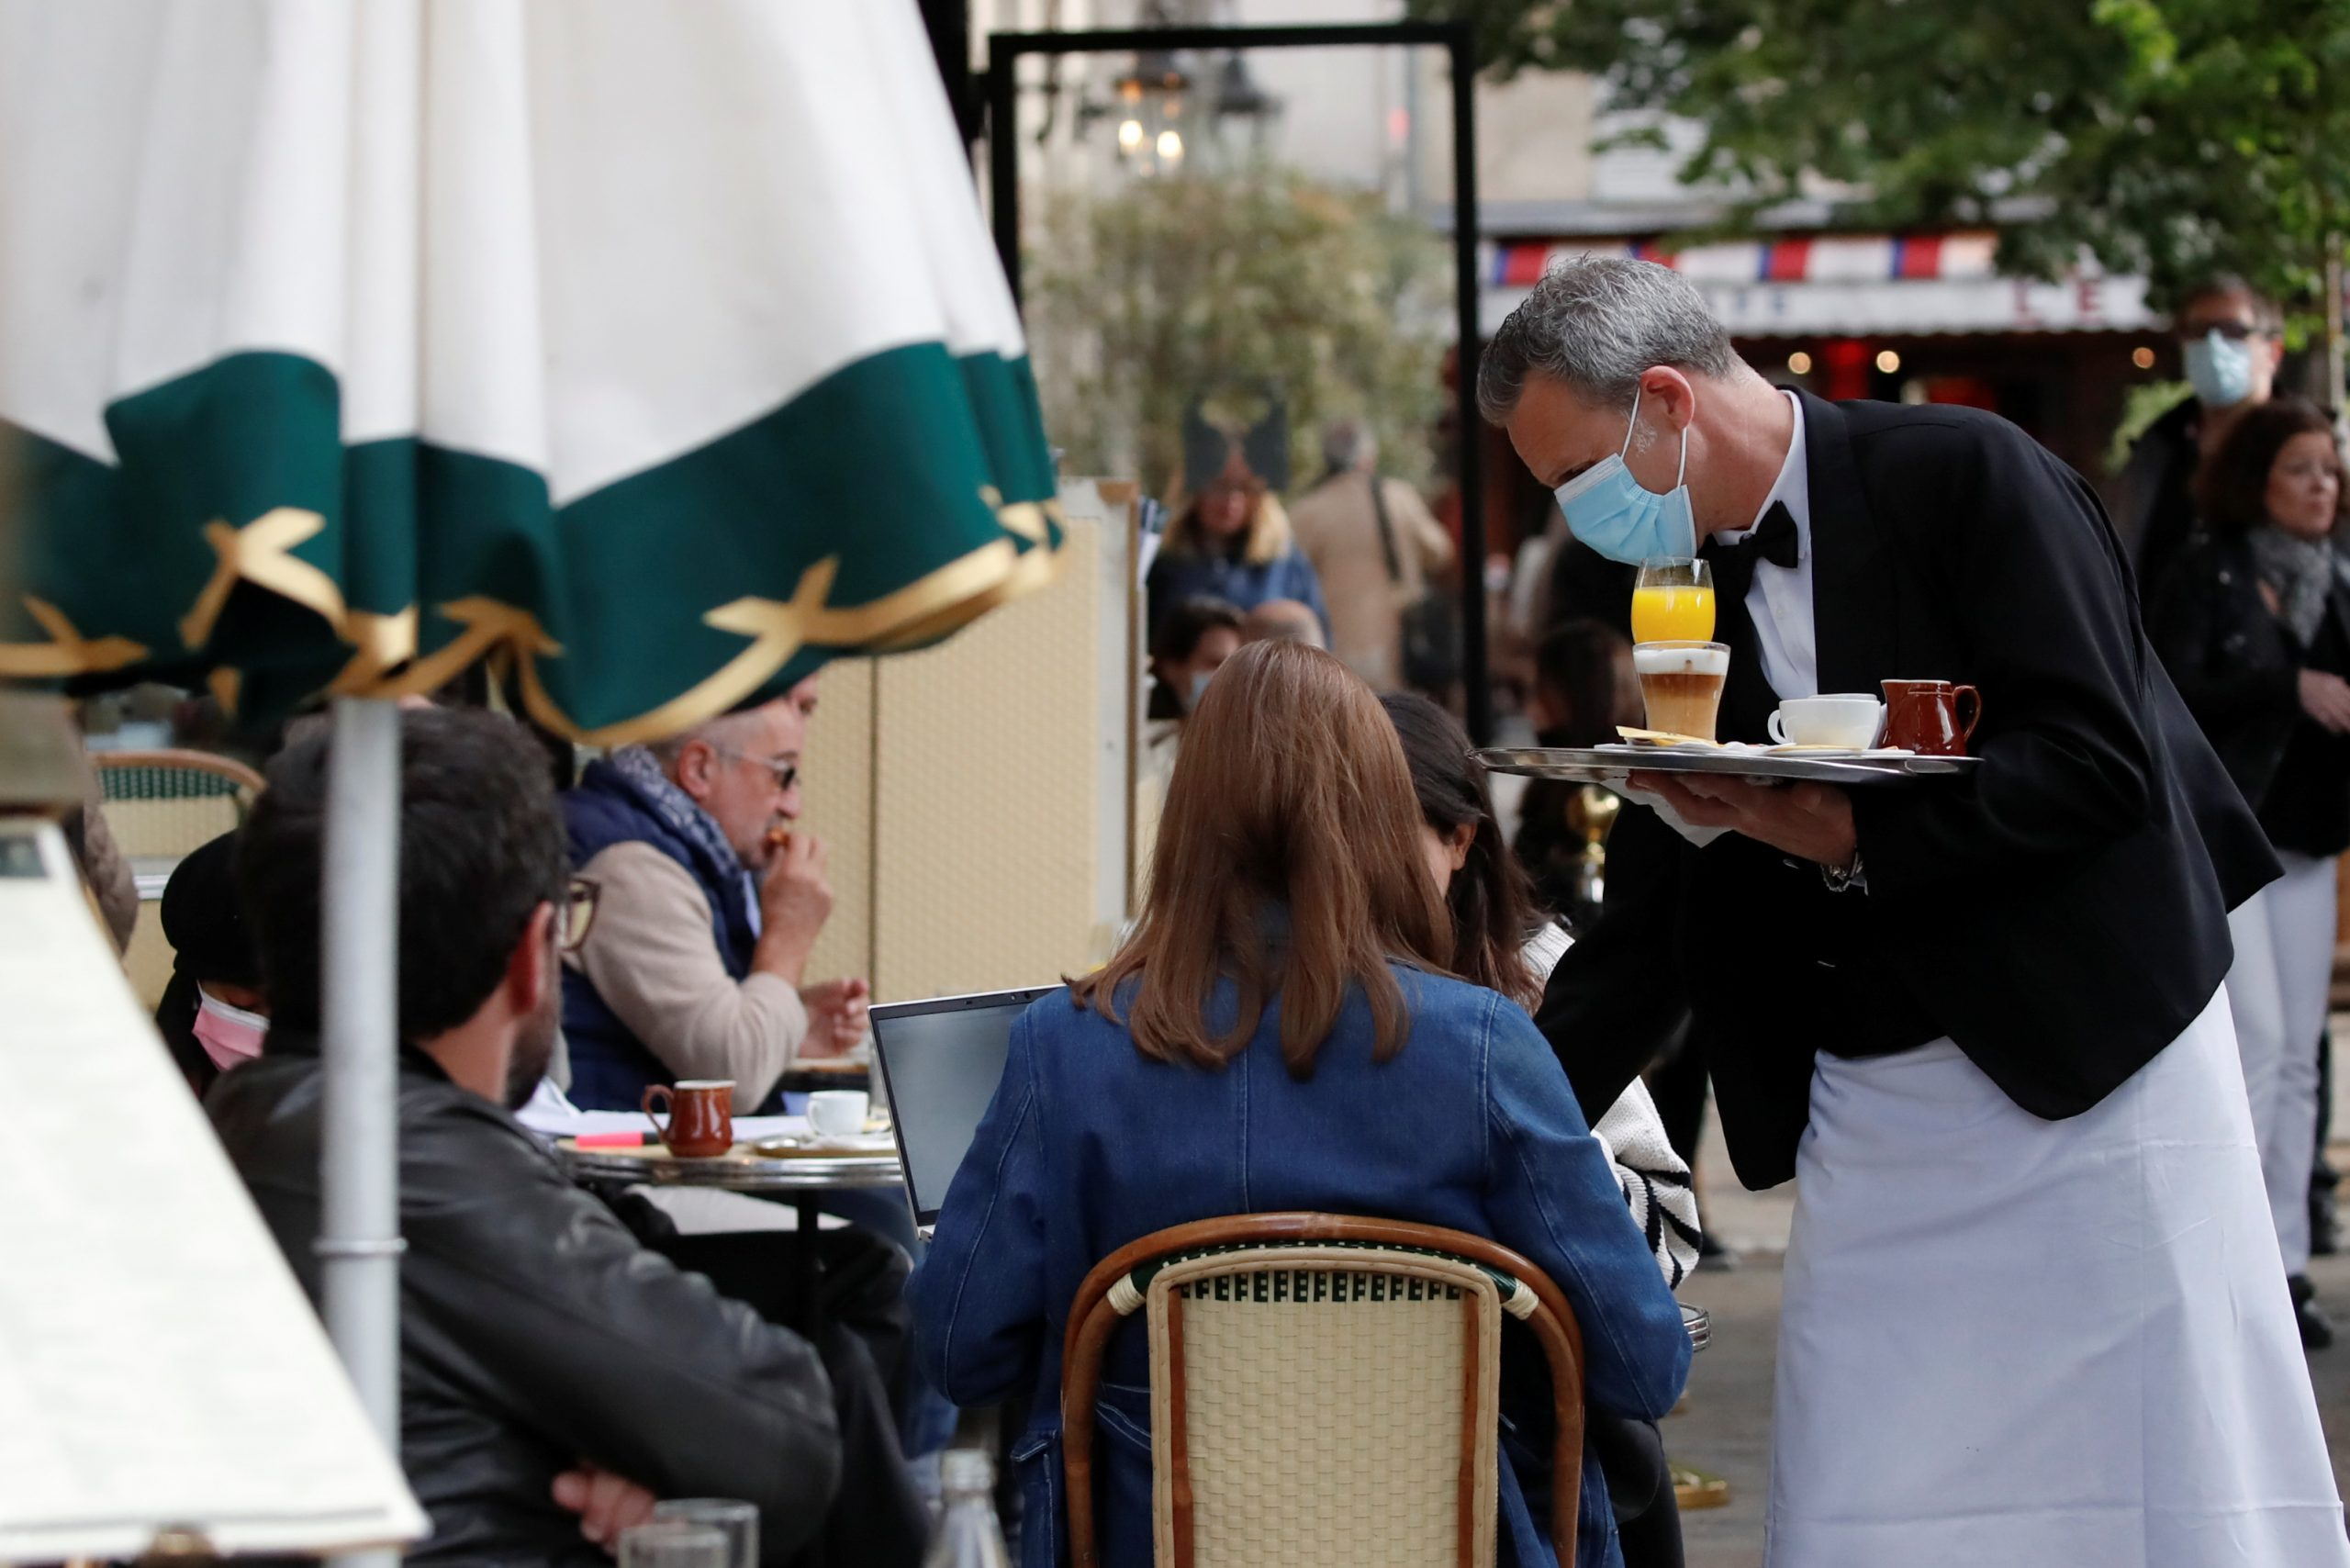 A waiter serves customers as cafes, bars and restaurants reopen their terraces after closing down for months, amid the coronavirus disease (COVID-19) outbreak, in Paris, France, May 19, 2021. REUTERS/Christian Hartmann